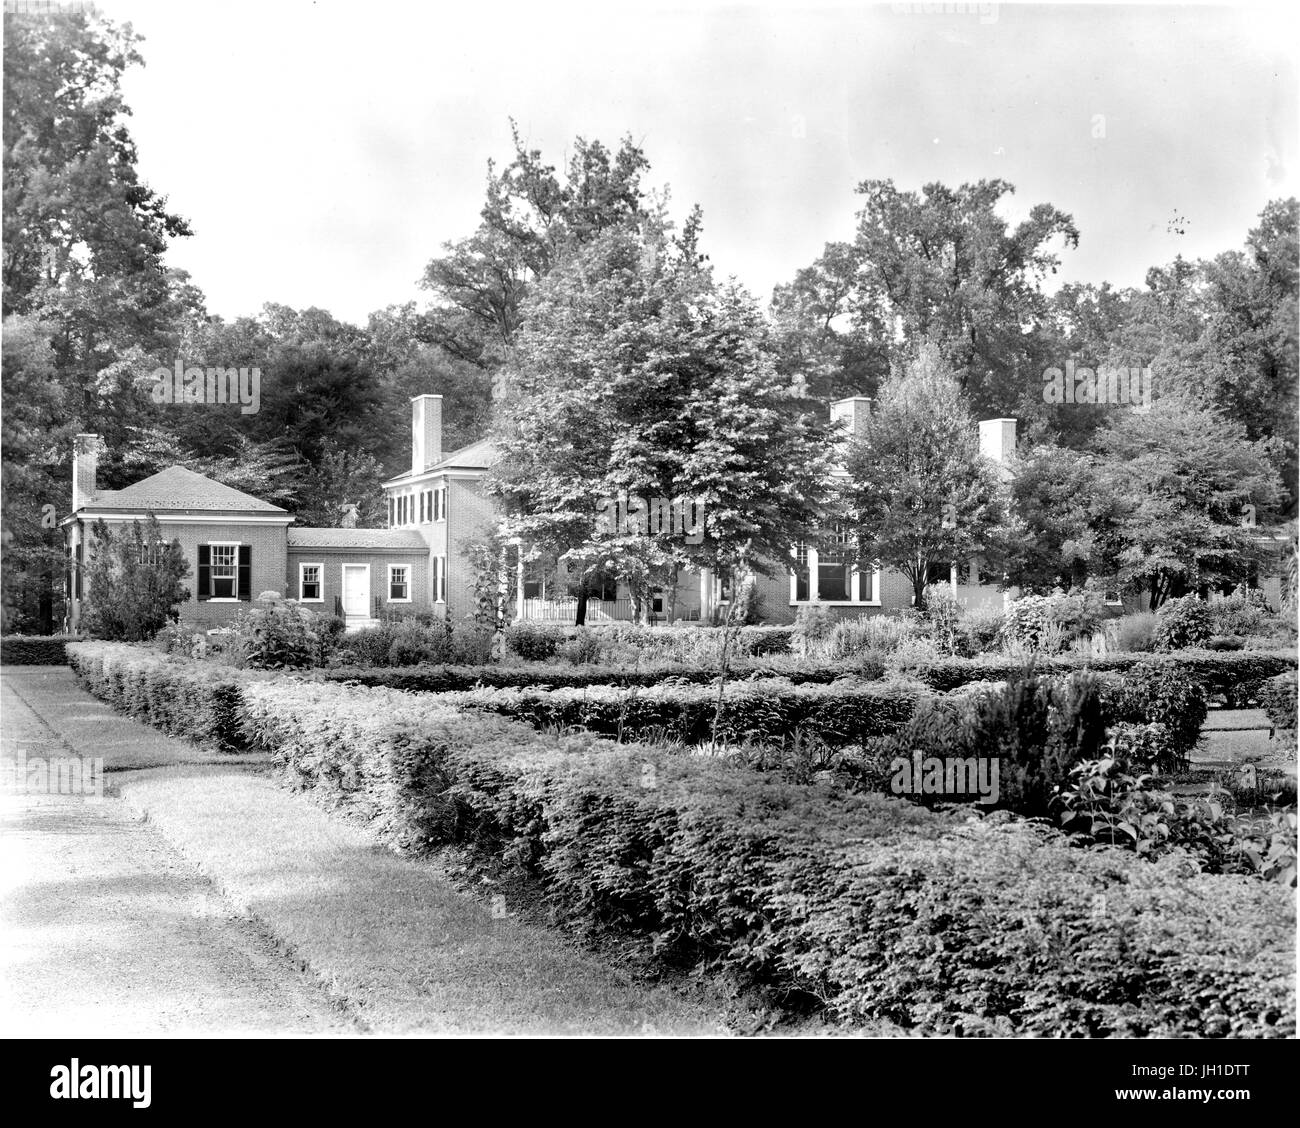 The Greenhouse And Botanical Gardens Of The Johns Hopkins Club In  Baltimore, Maryland, 1910